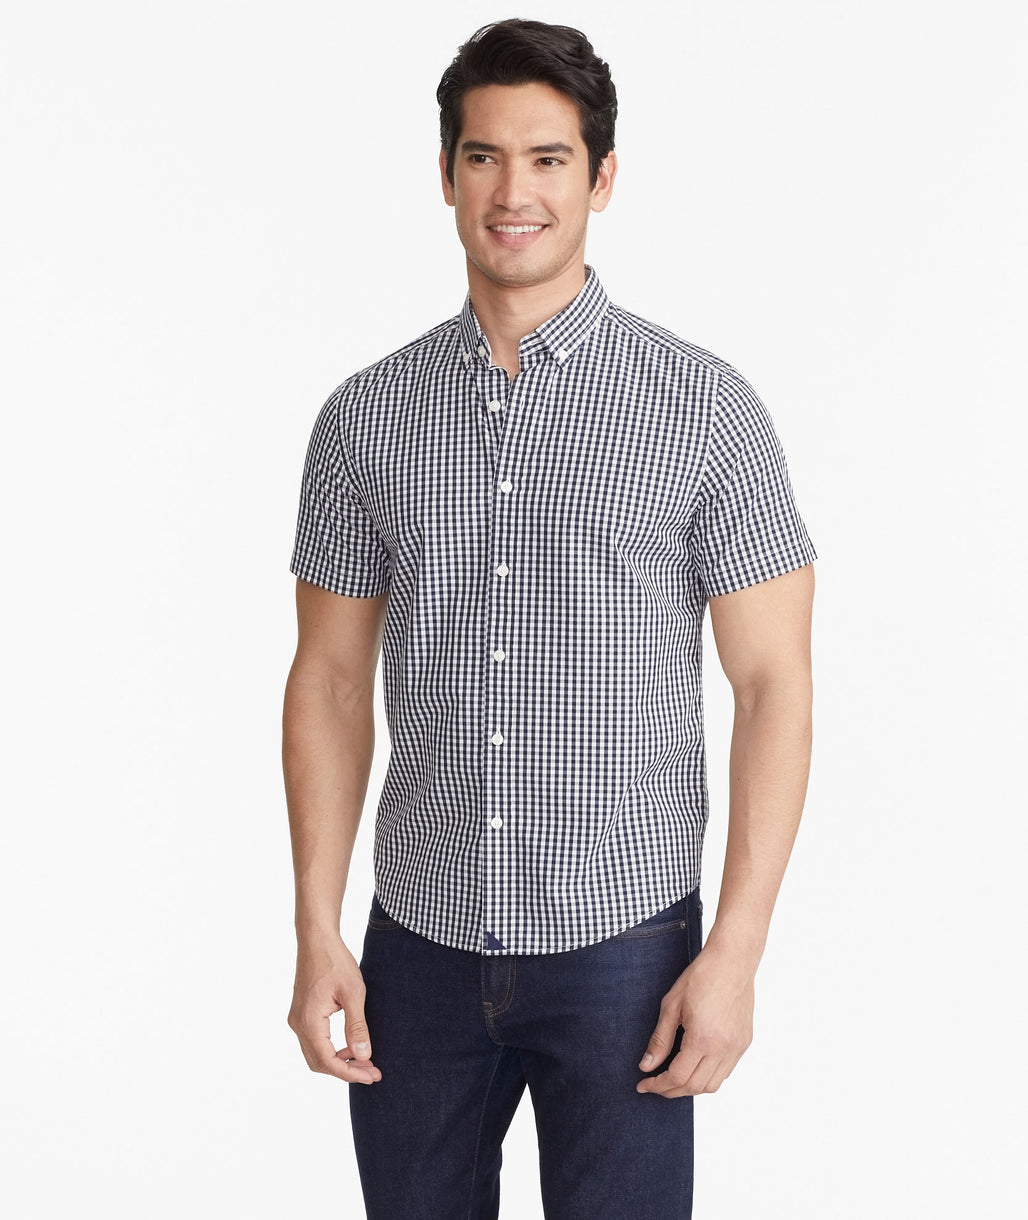 Model wearing a Navy Classic Short-Sleeve Censio Shirt